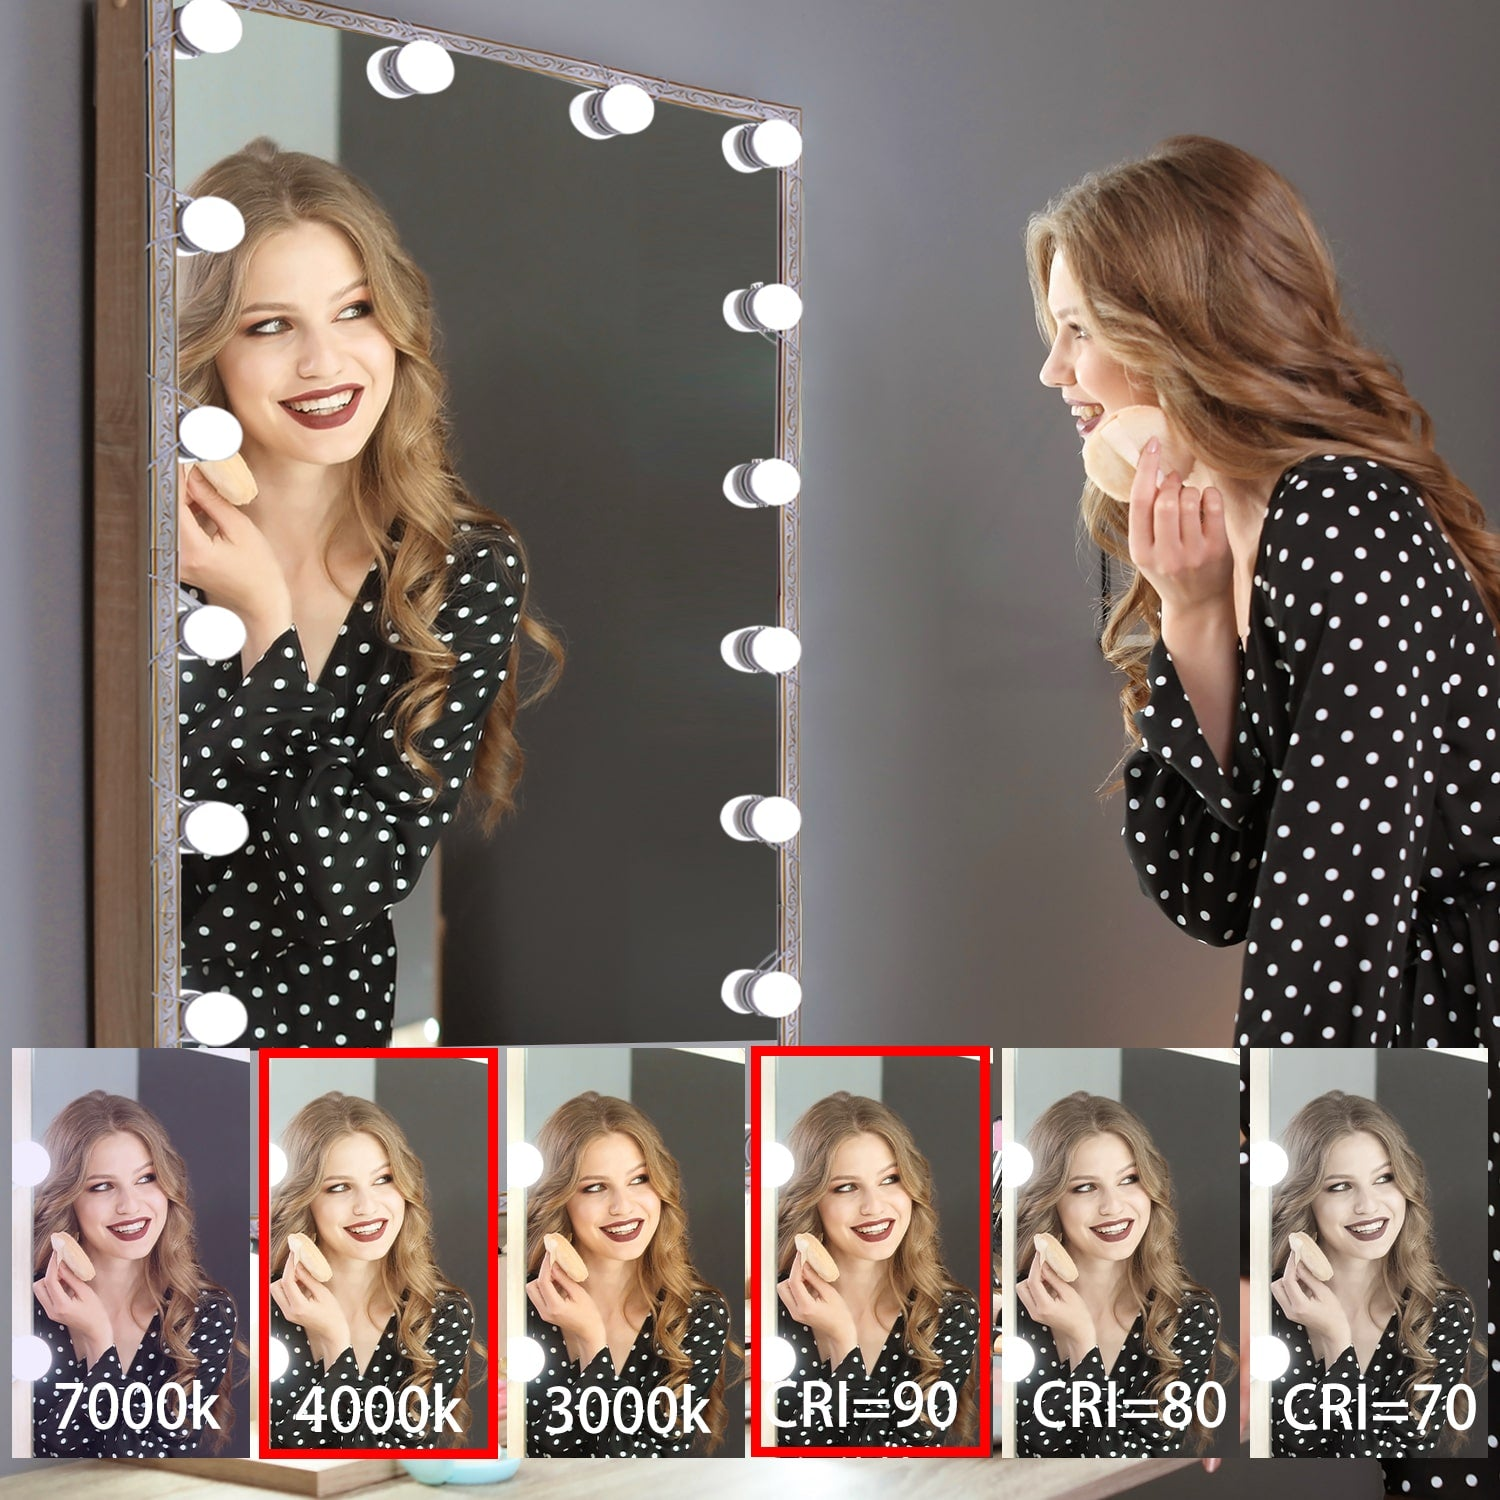 LED Makeup Mirror Lights(4000K, 14 Bulbs, 5V USB) Mirror Not Included